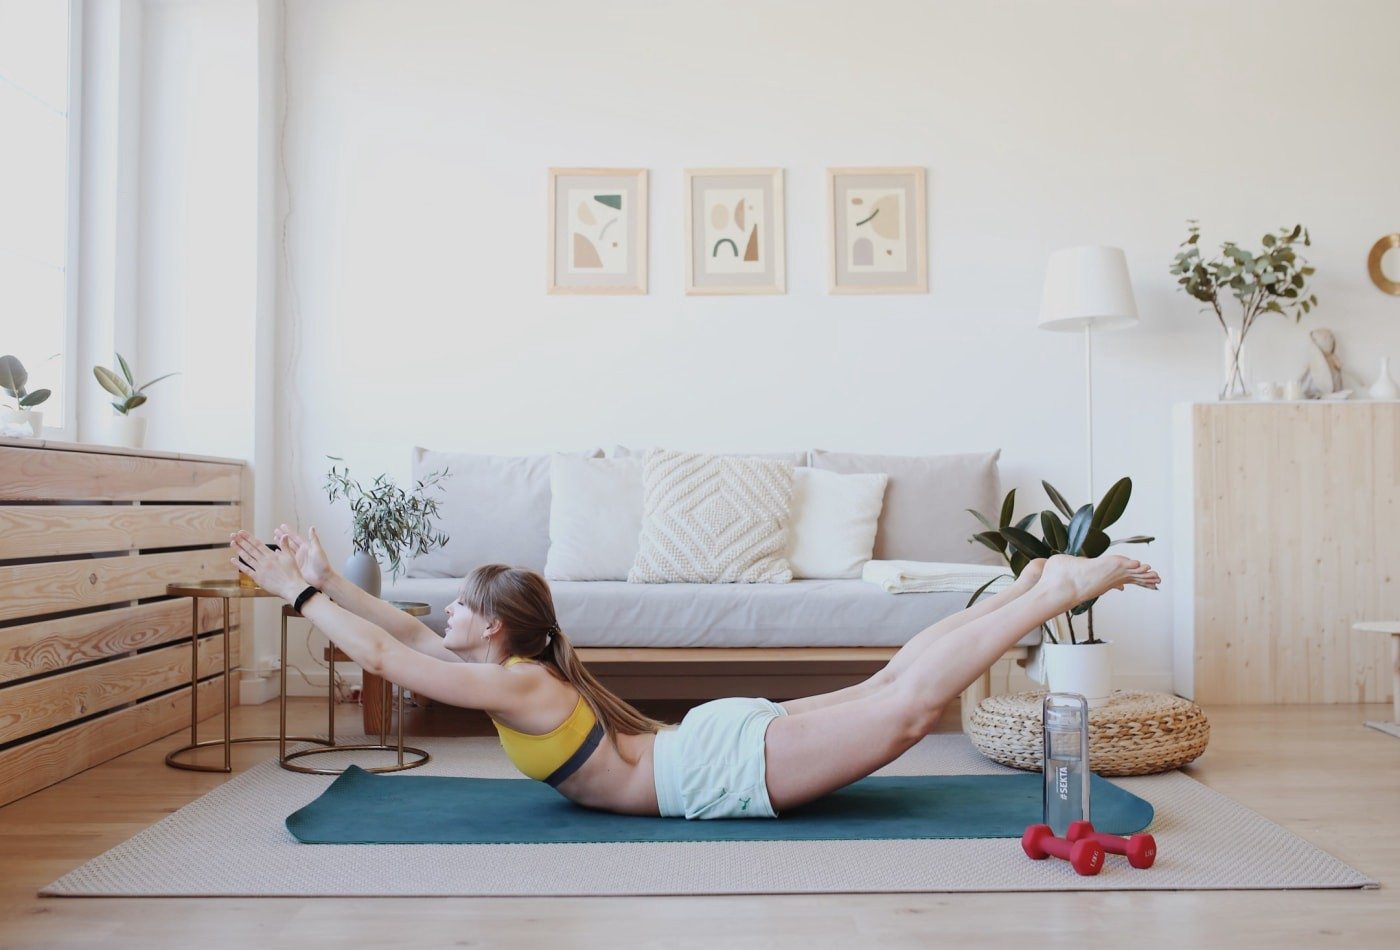 Small Workout Room Ideas For Your Home By Soniya Kapoor Medium